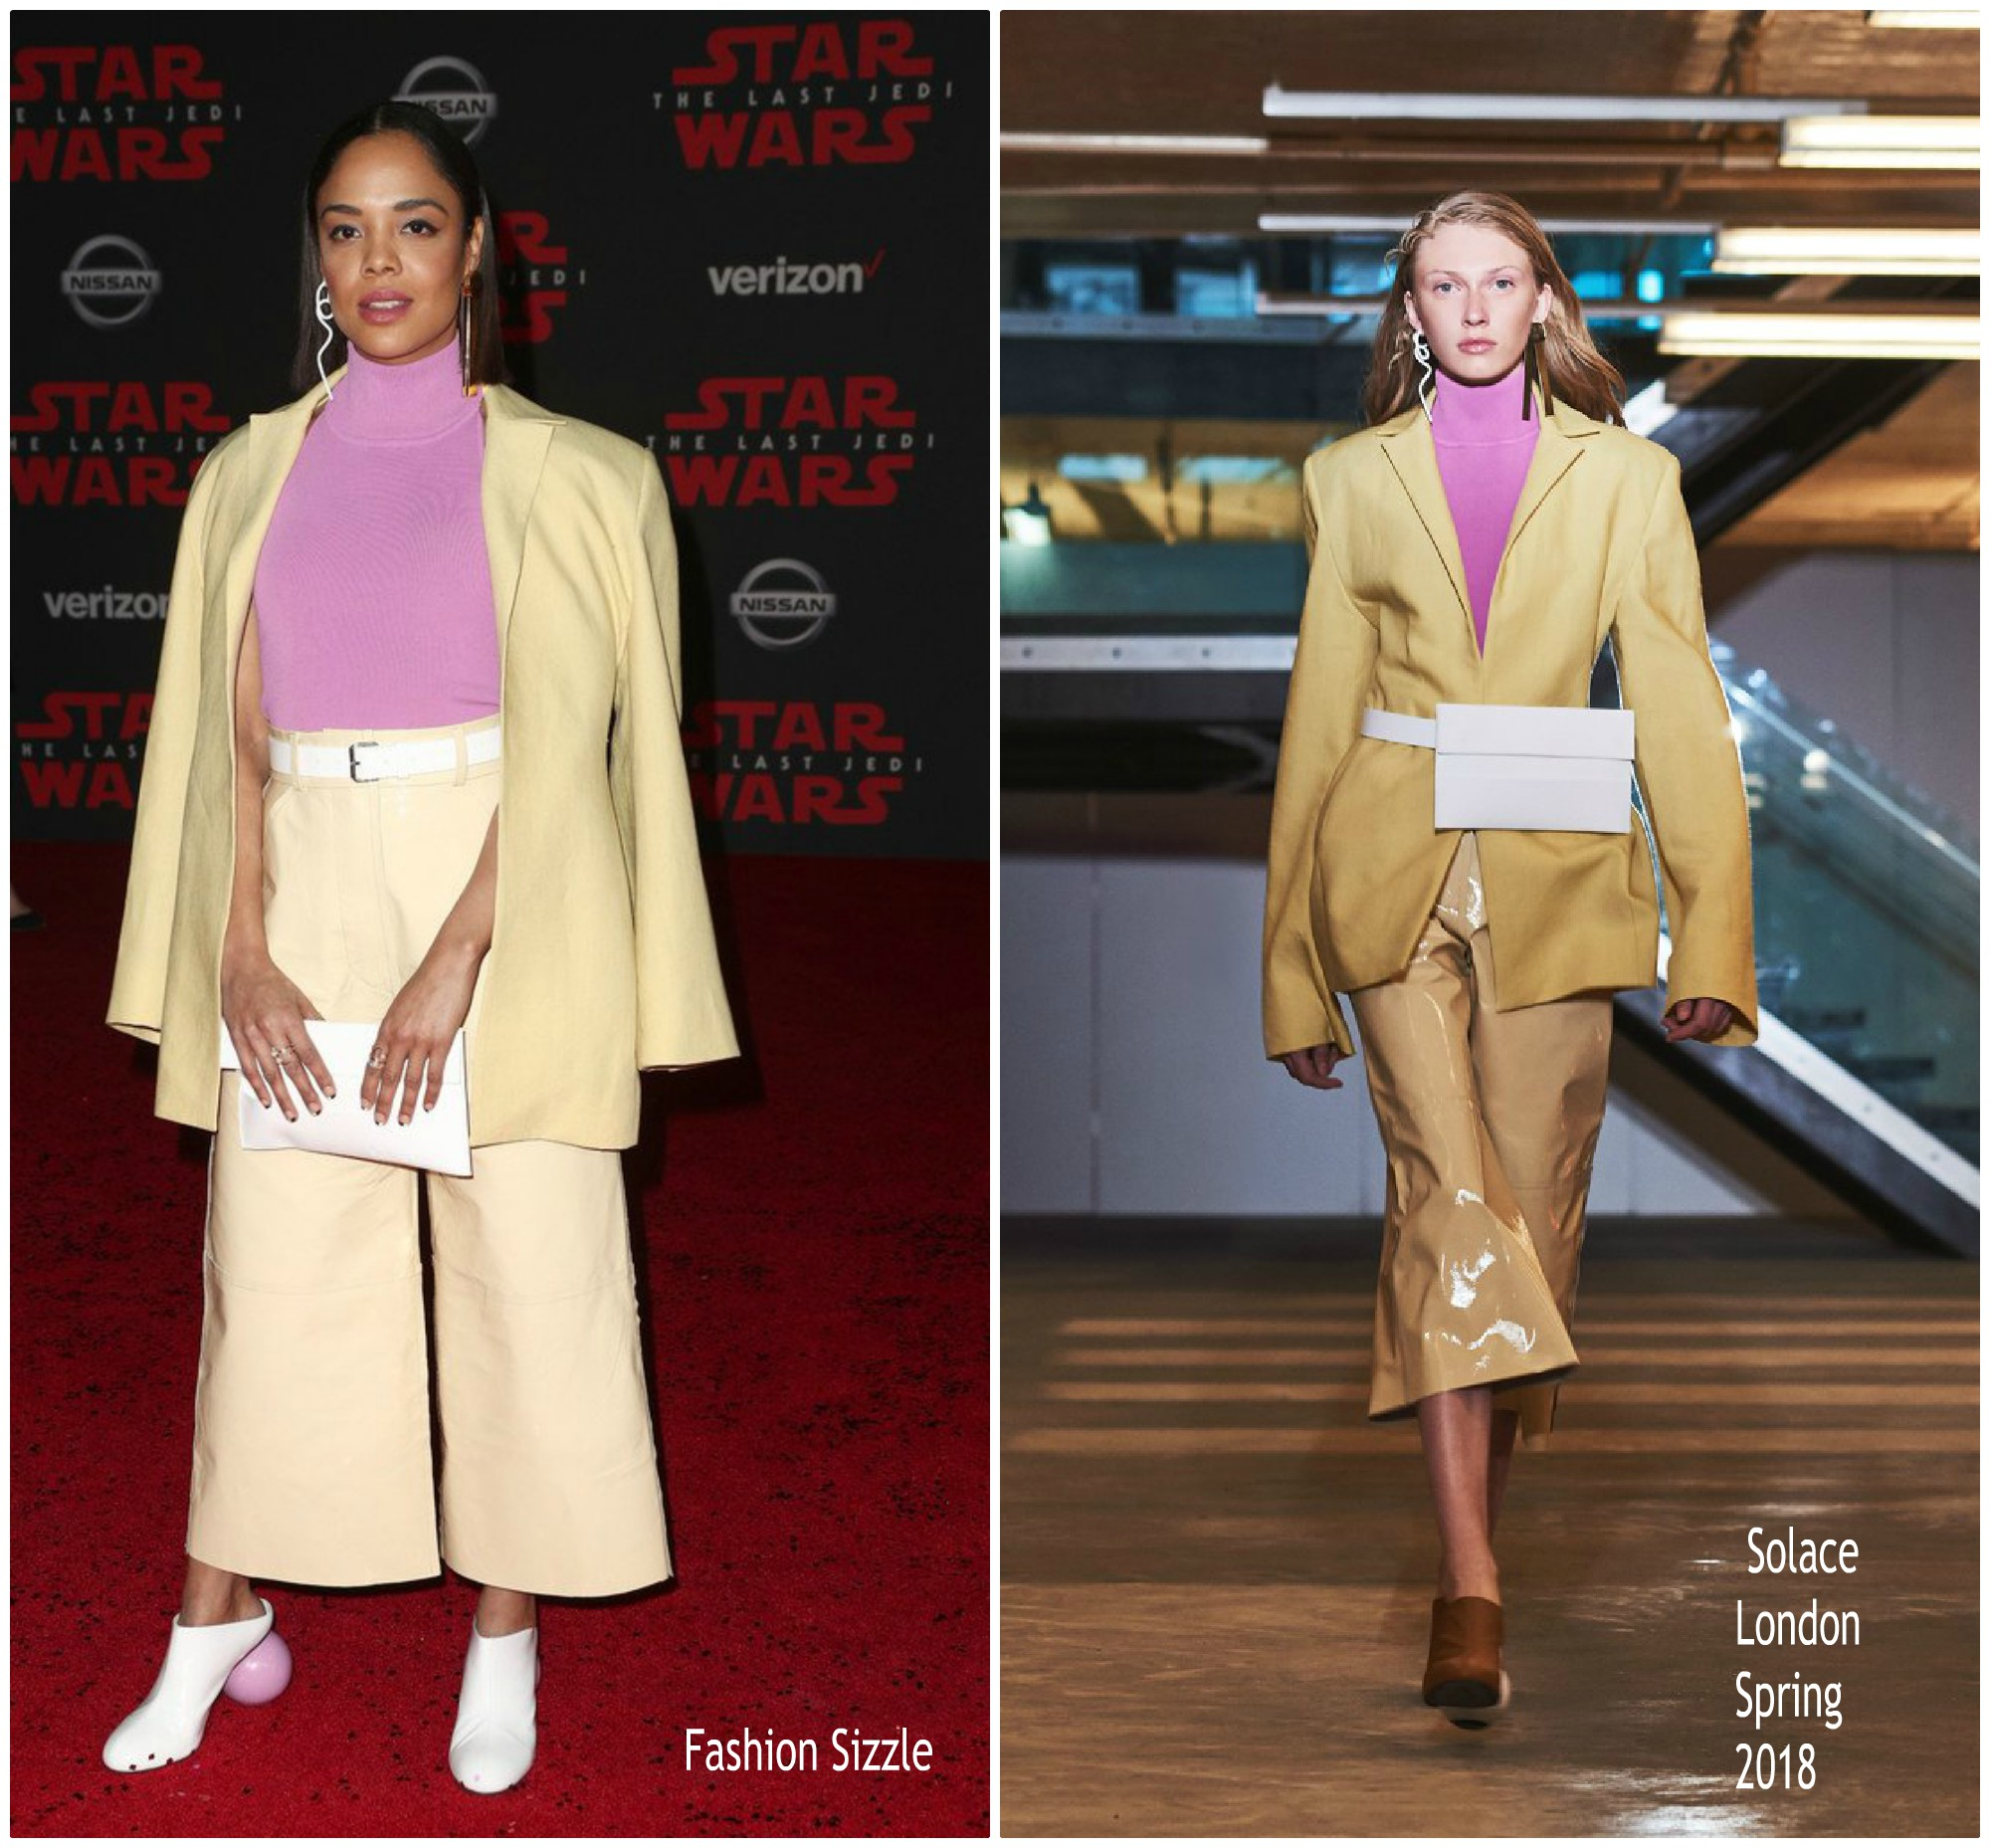 teesa-thompson-in-solace-london-star-wars-the-last-jedi-la-premiere